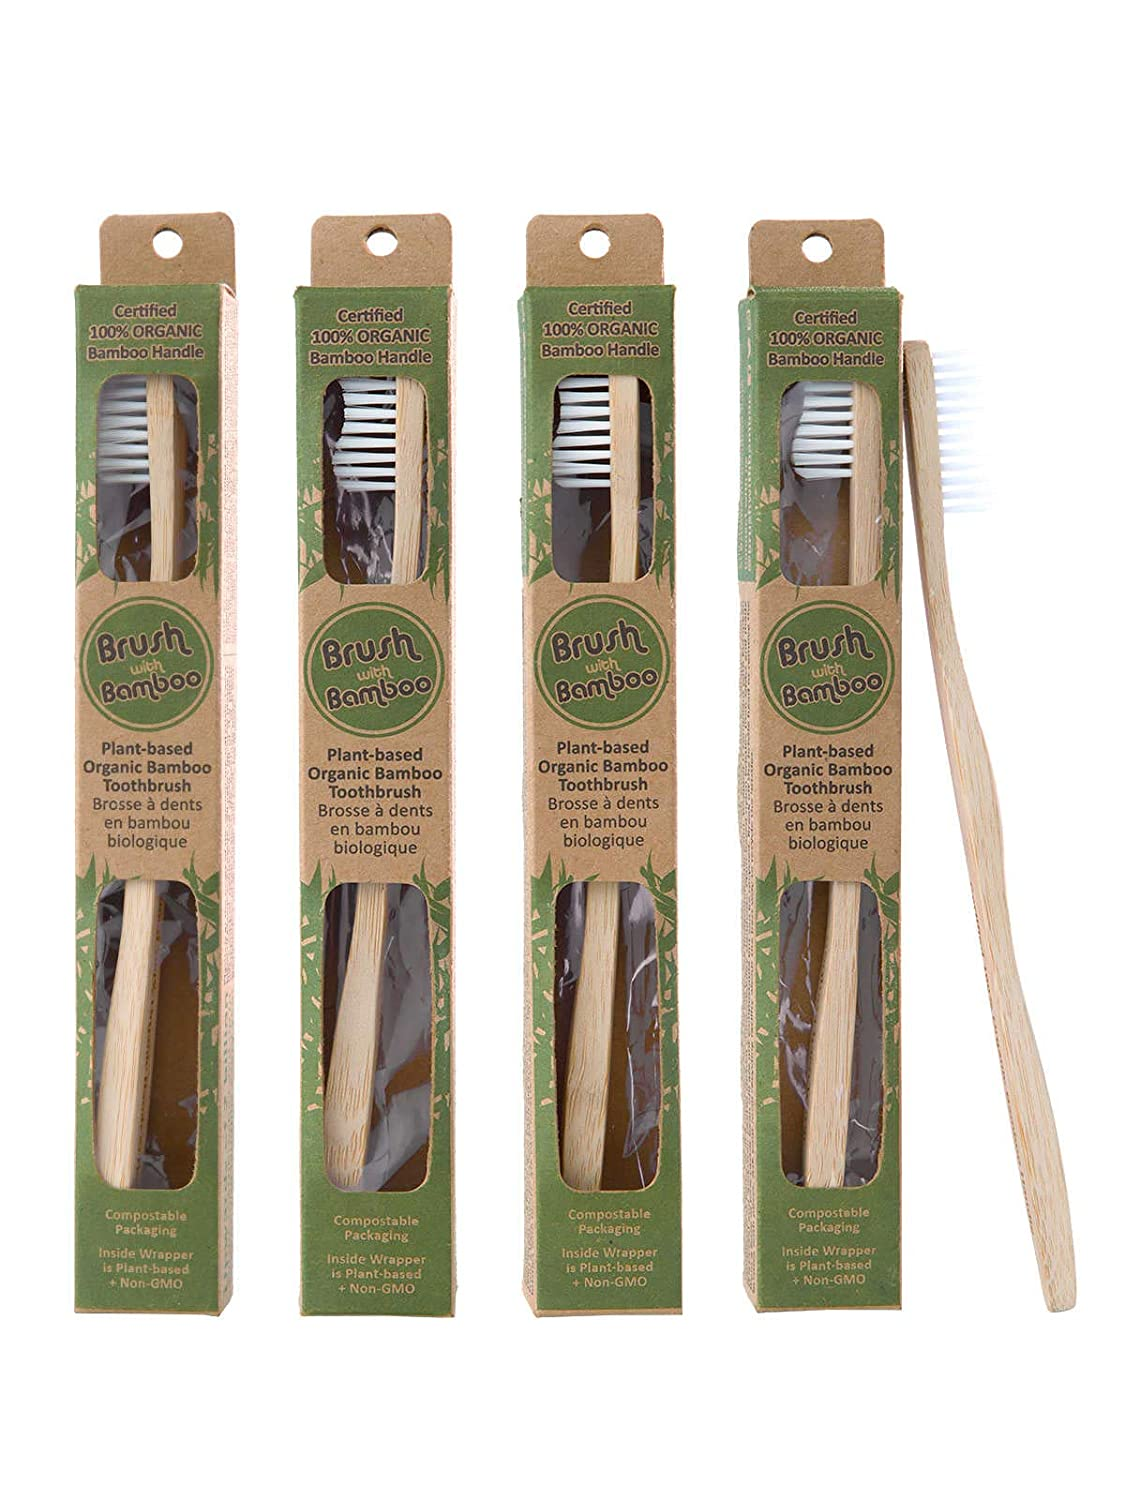 Plant-based Bamboo Toothbrush Adult Size 4 Pack by Brush with Bamboo B009O3BCT2